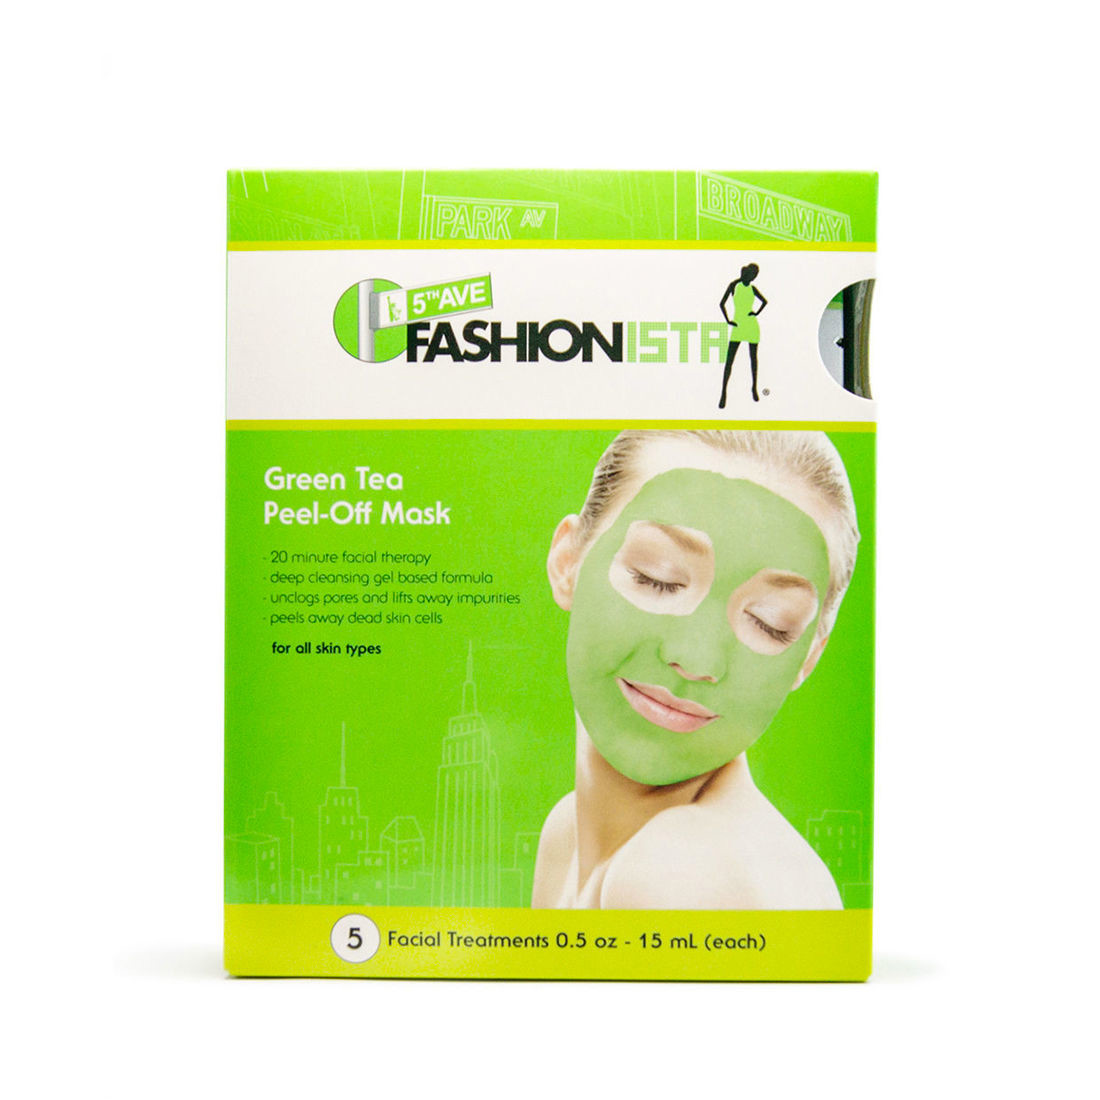 Green Tea Peel-Off Mask (5pcs)